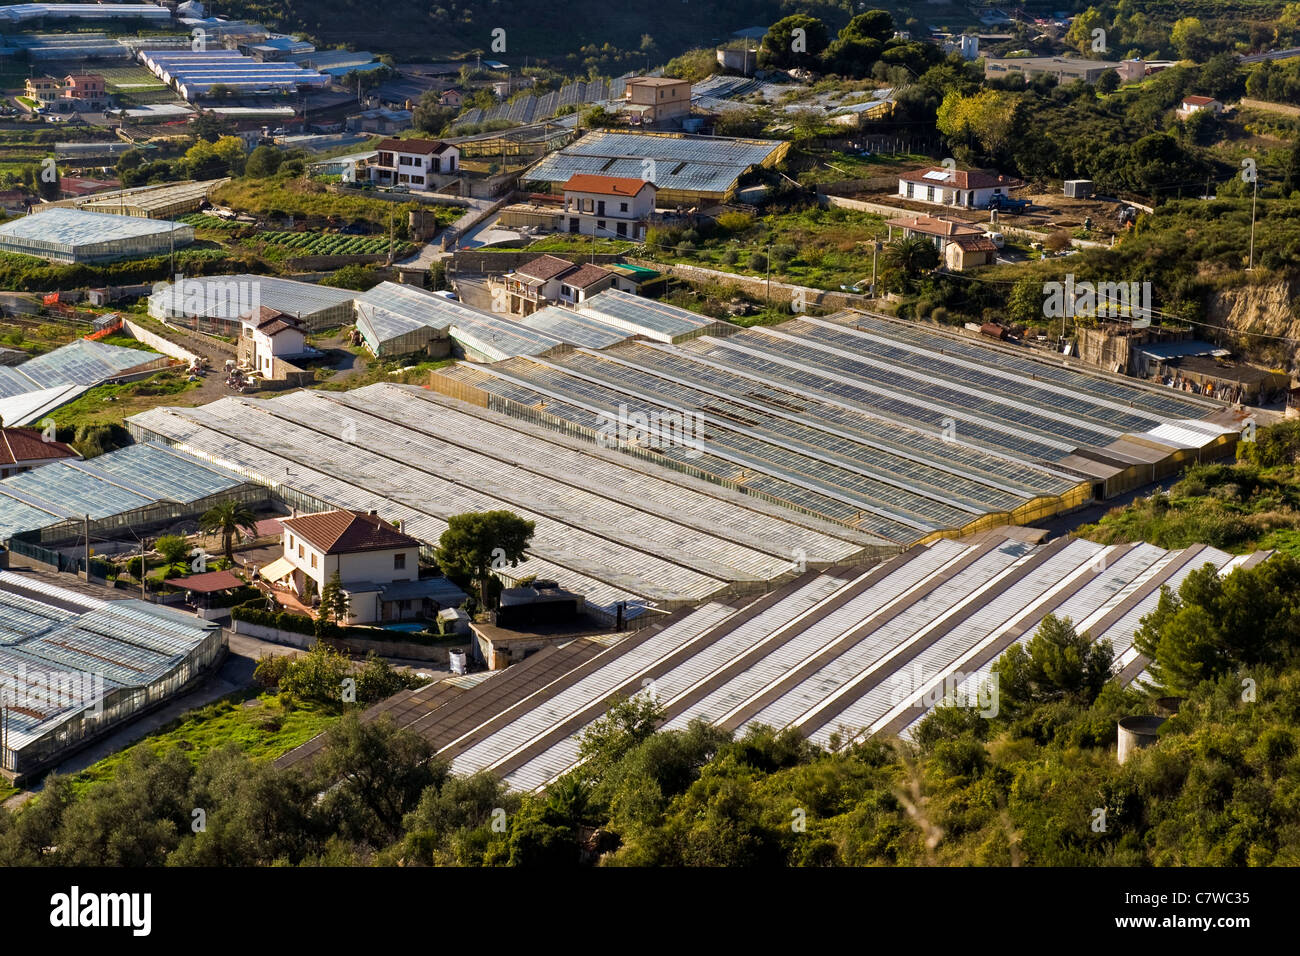 Italy, Liguria, Sanremo, flower greenhouses - Stock Image